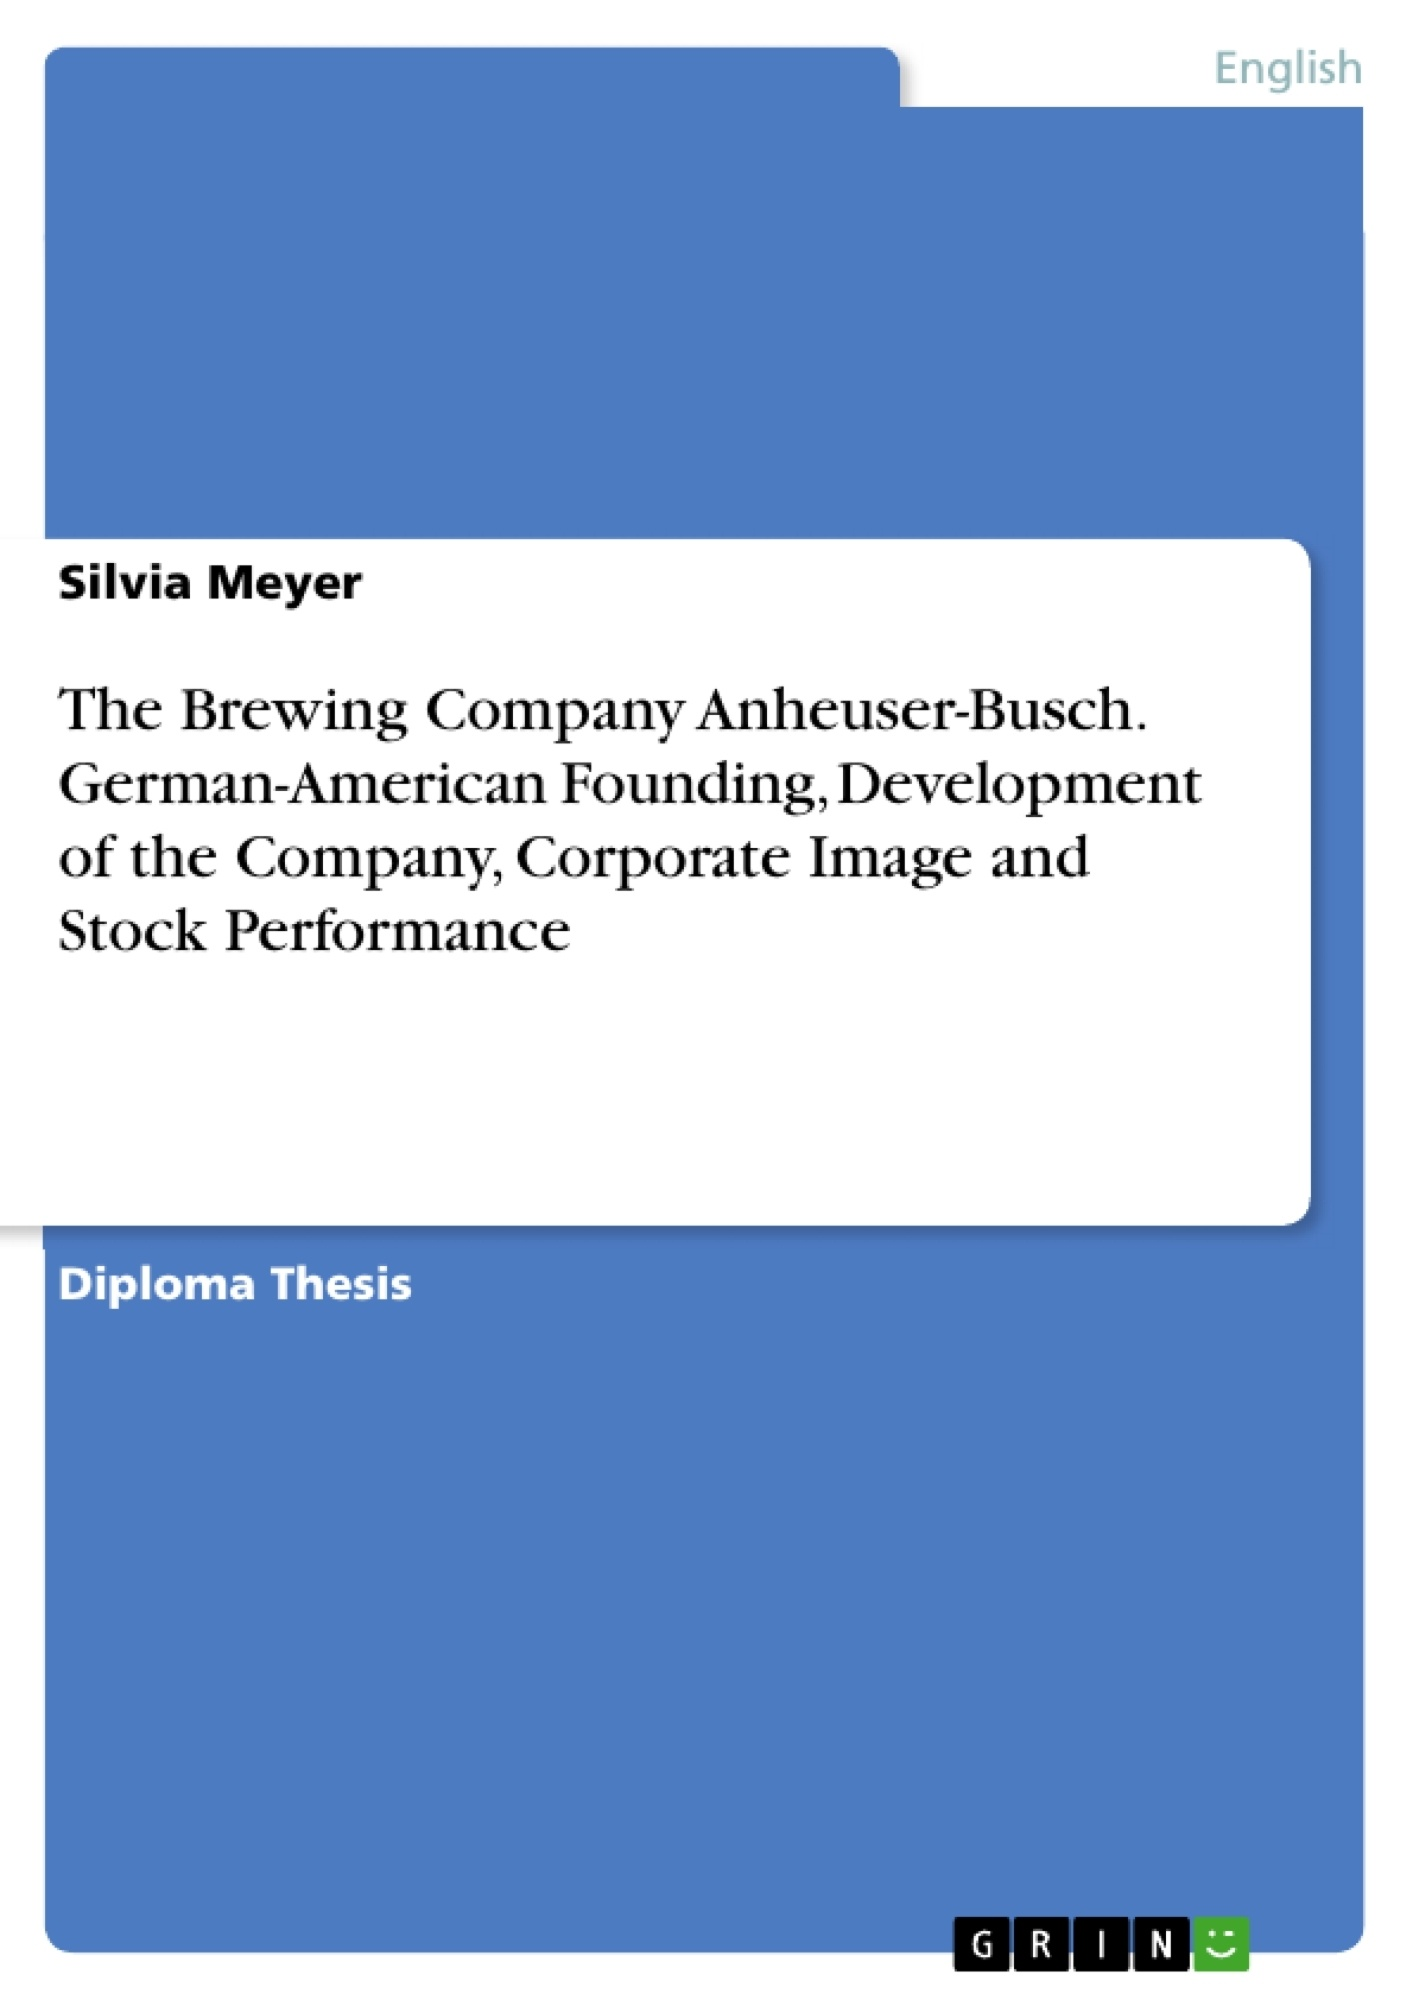 Title: The Brewing Company Anheuser-Busch. German-American Founding, Development of the Company, Corporate Image and Stock Performance